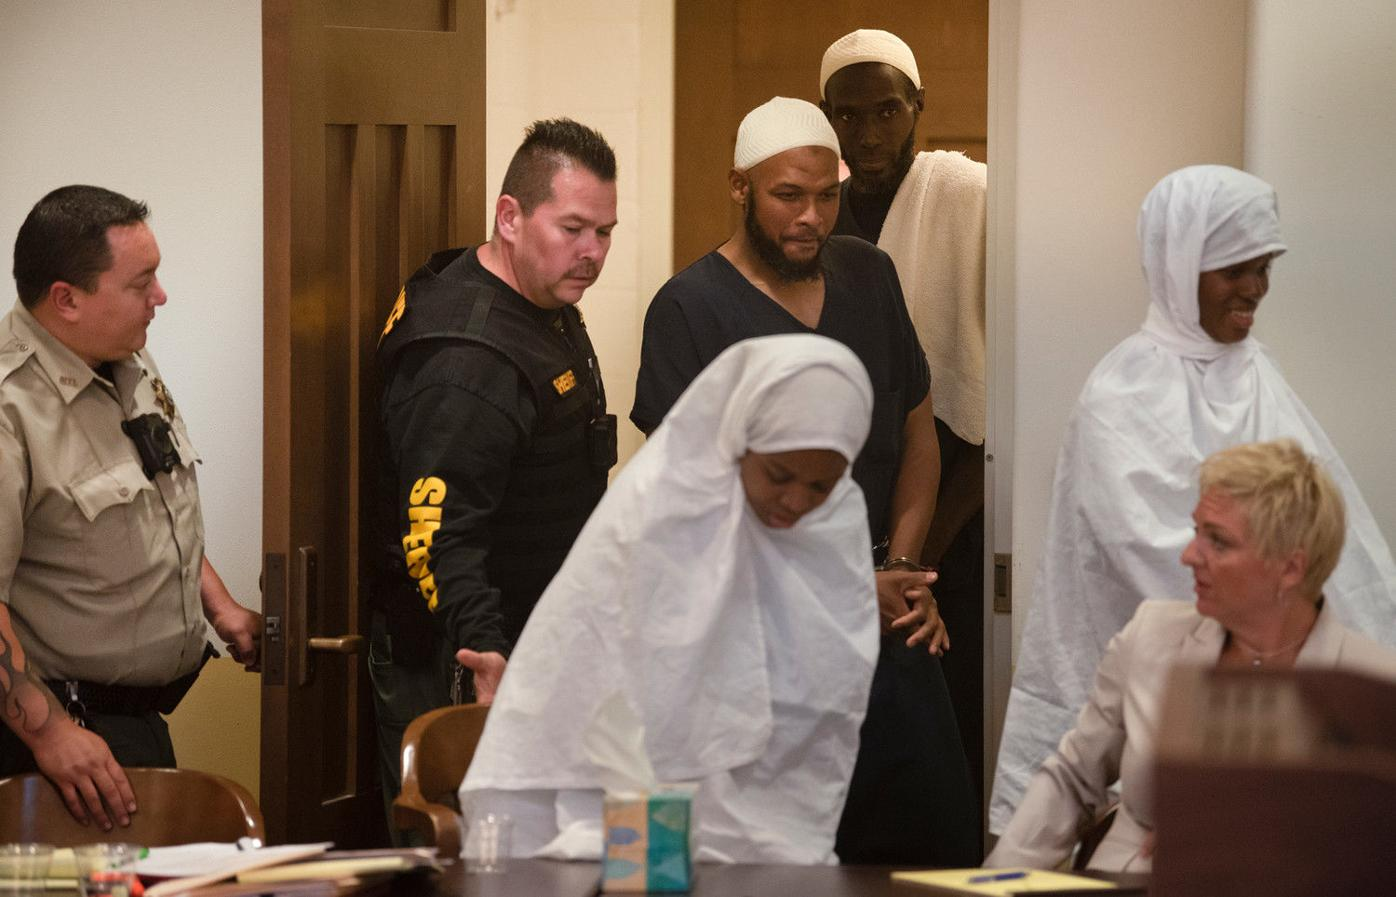 NNM compound suspects charged with federal crimes